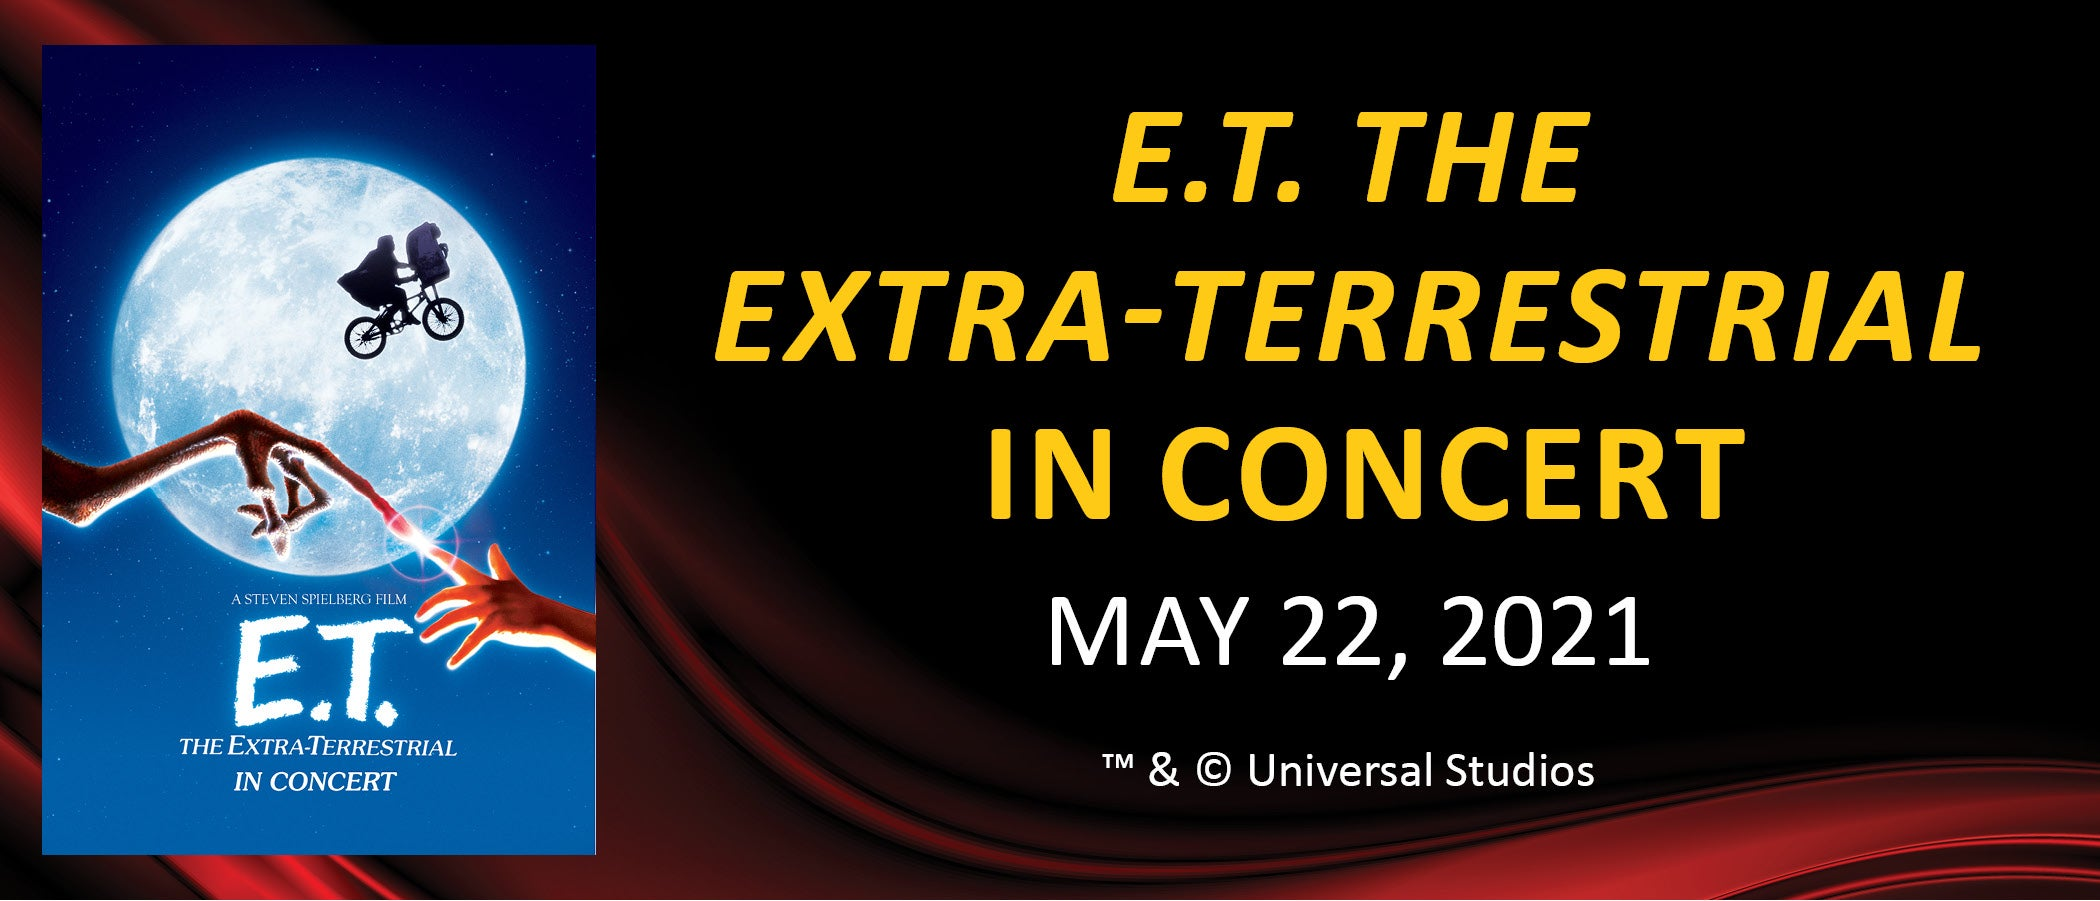 NEW DATE - E.T. The Extra-Terrestrial In Concert